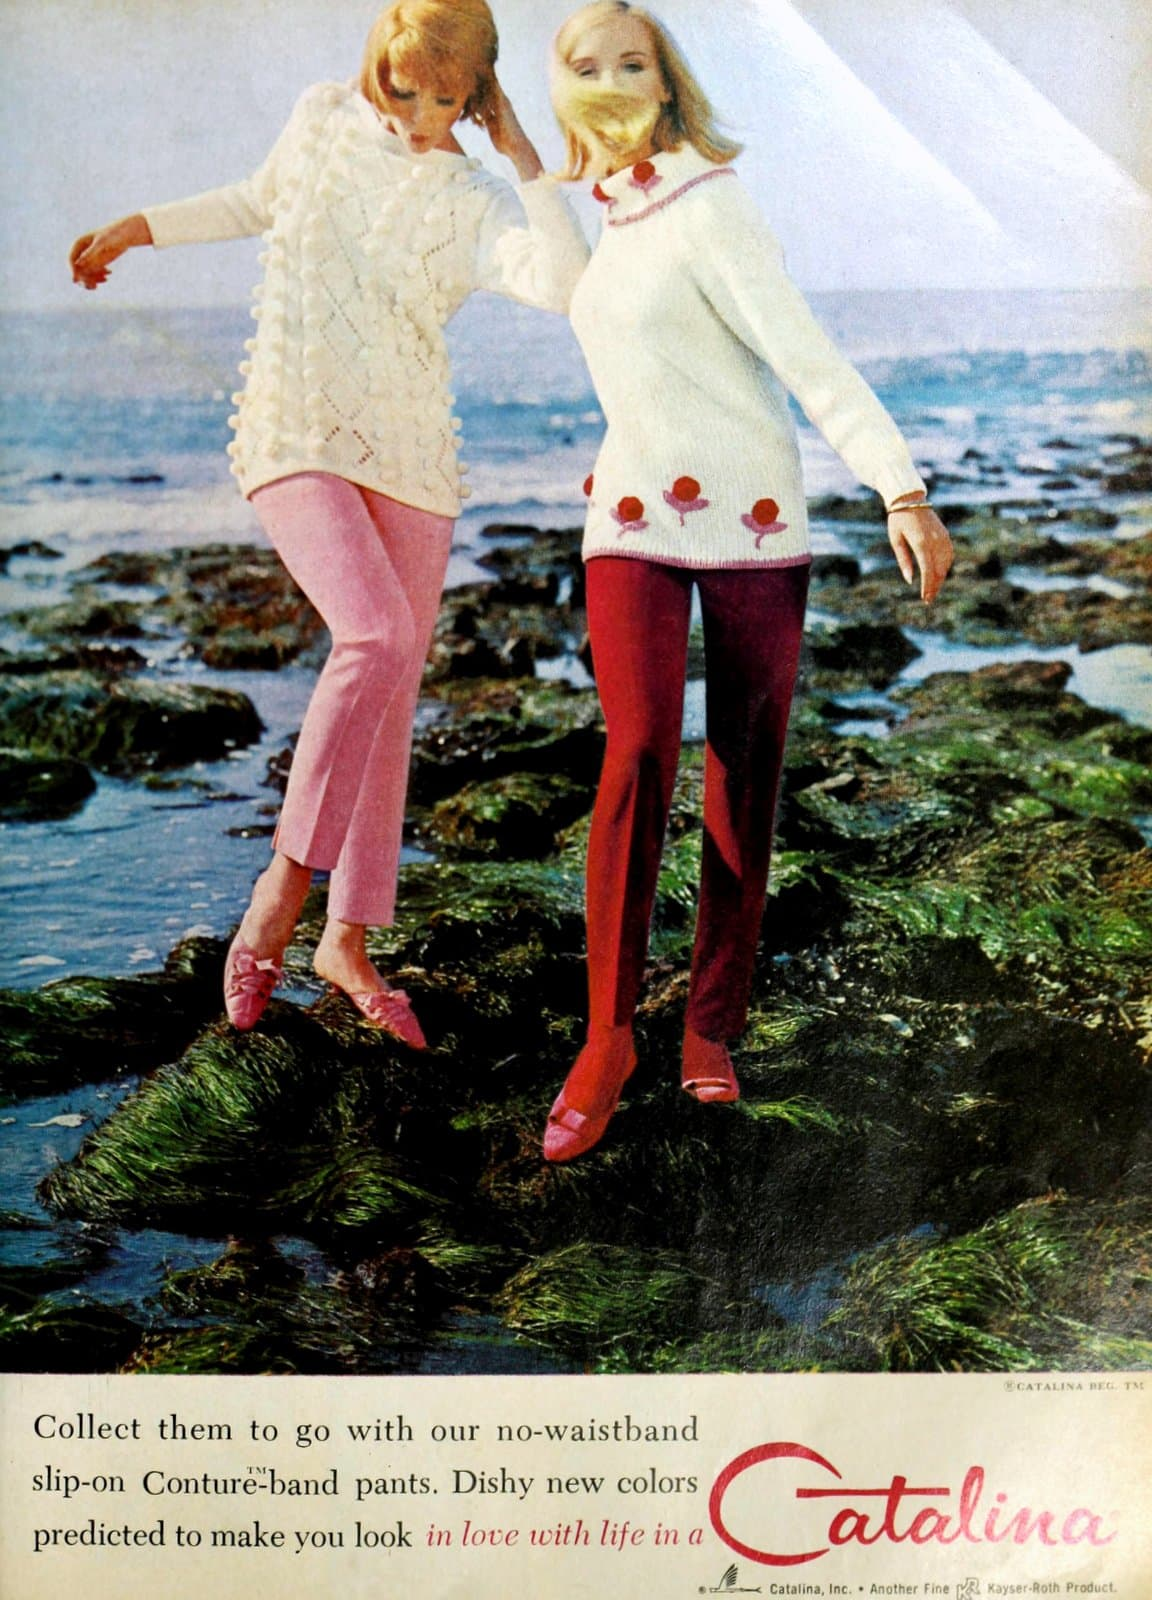 Vintage Catalina sweaters and slip-on pants (1965)